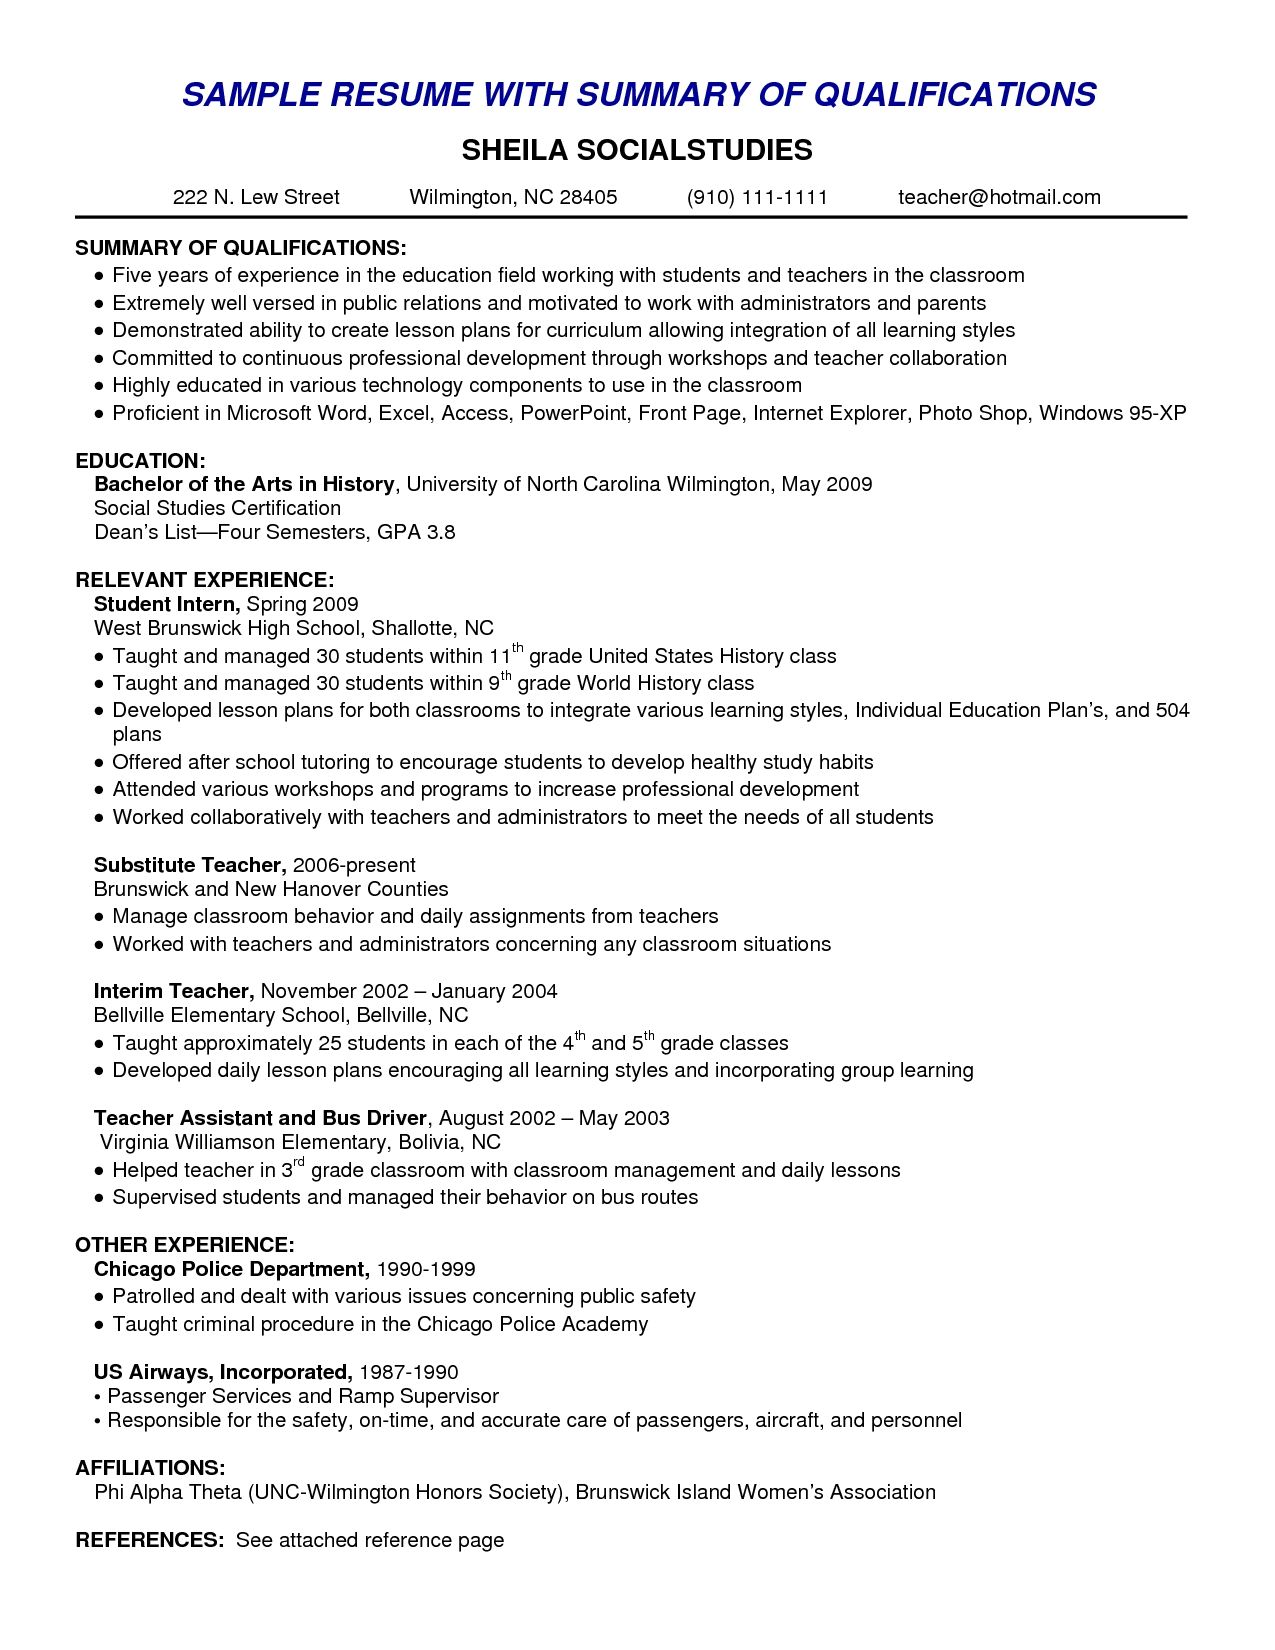 summary for resume examples - Ideal.vistalist.co